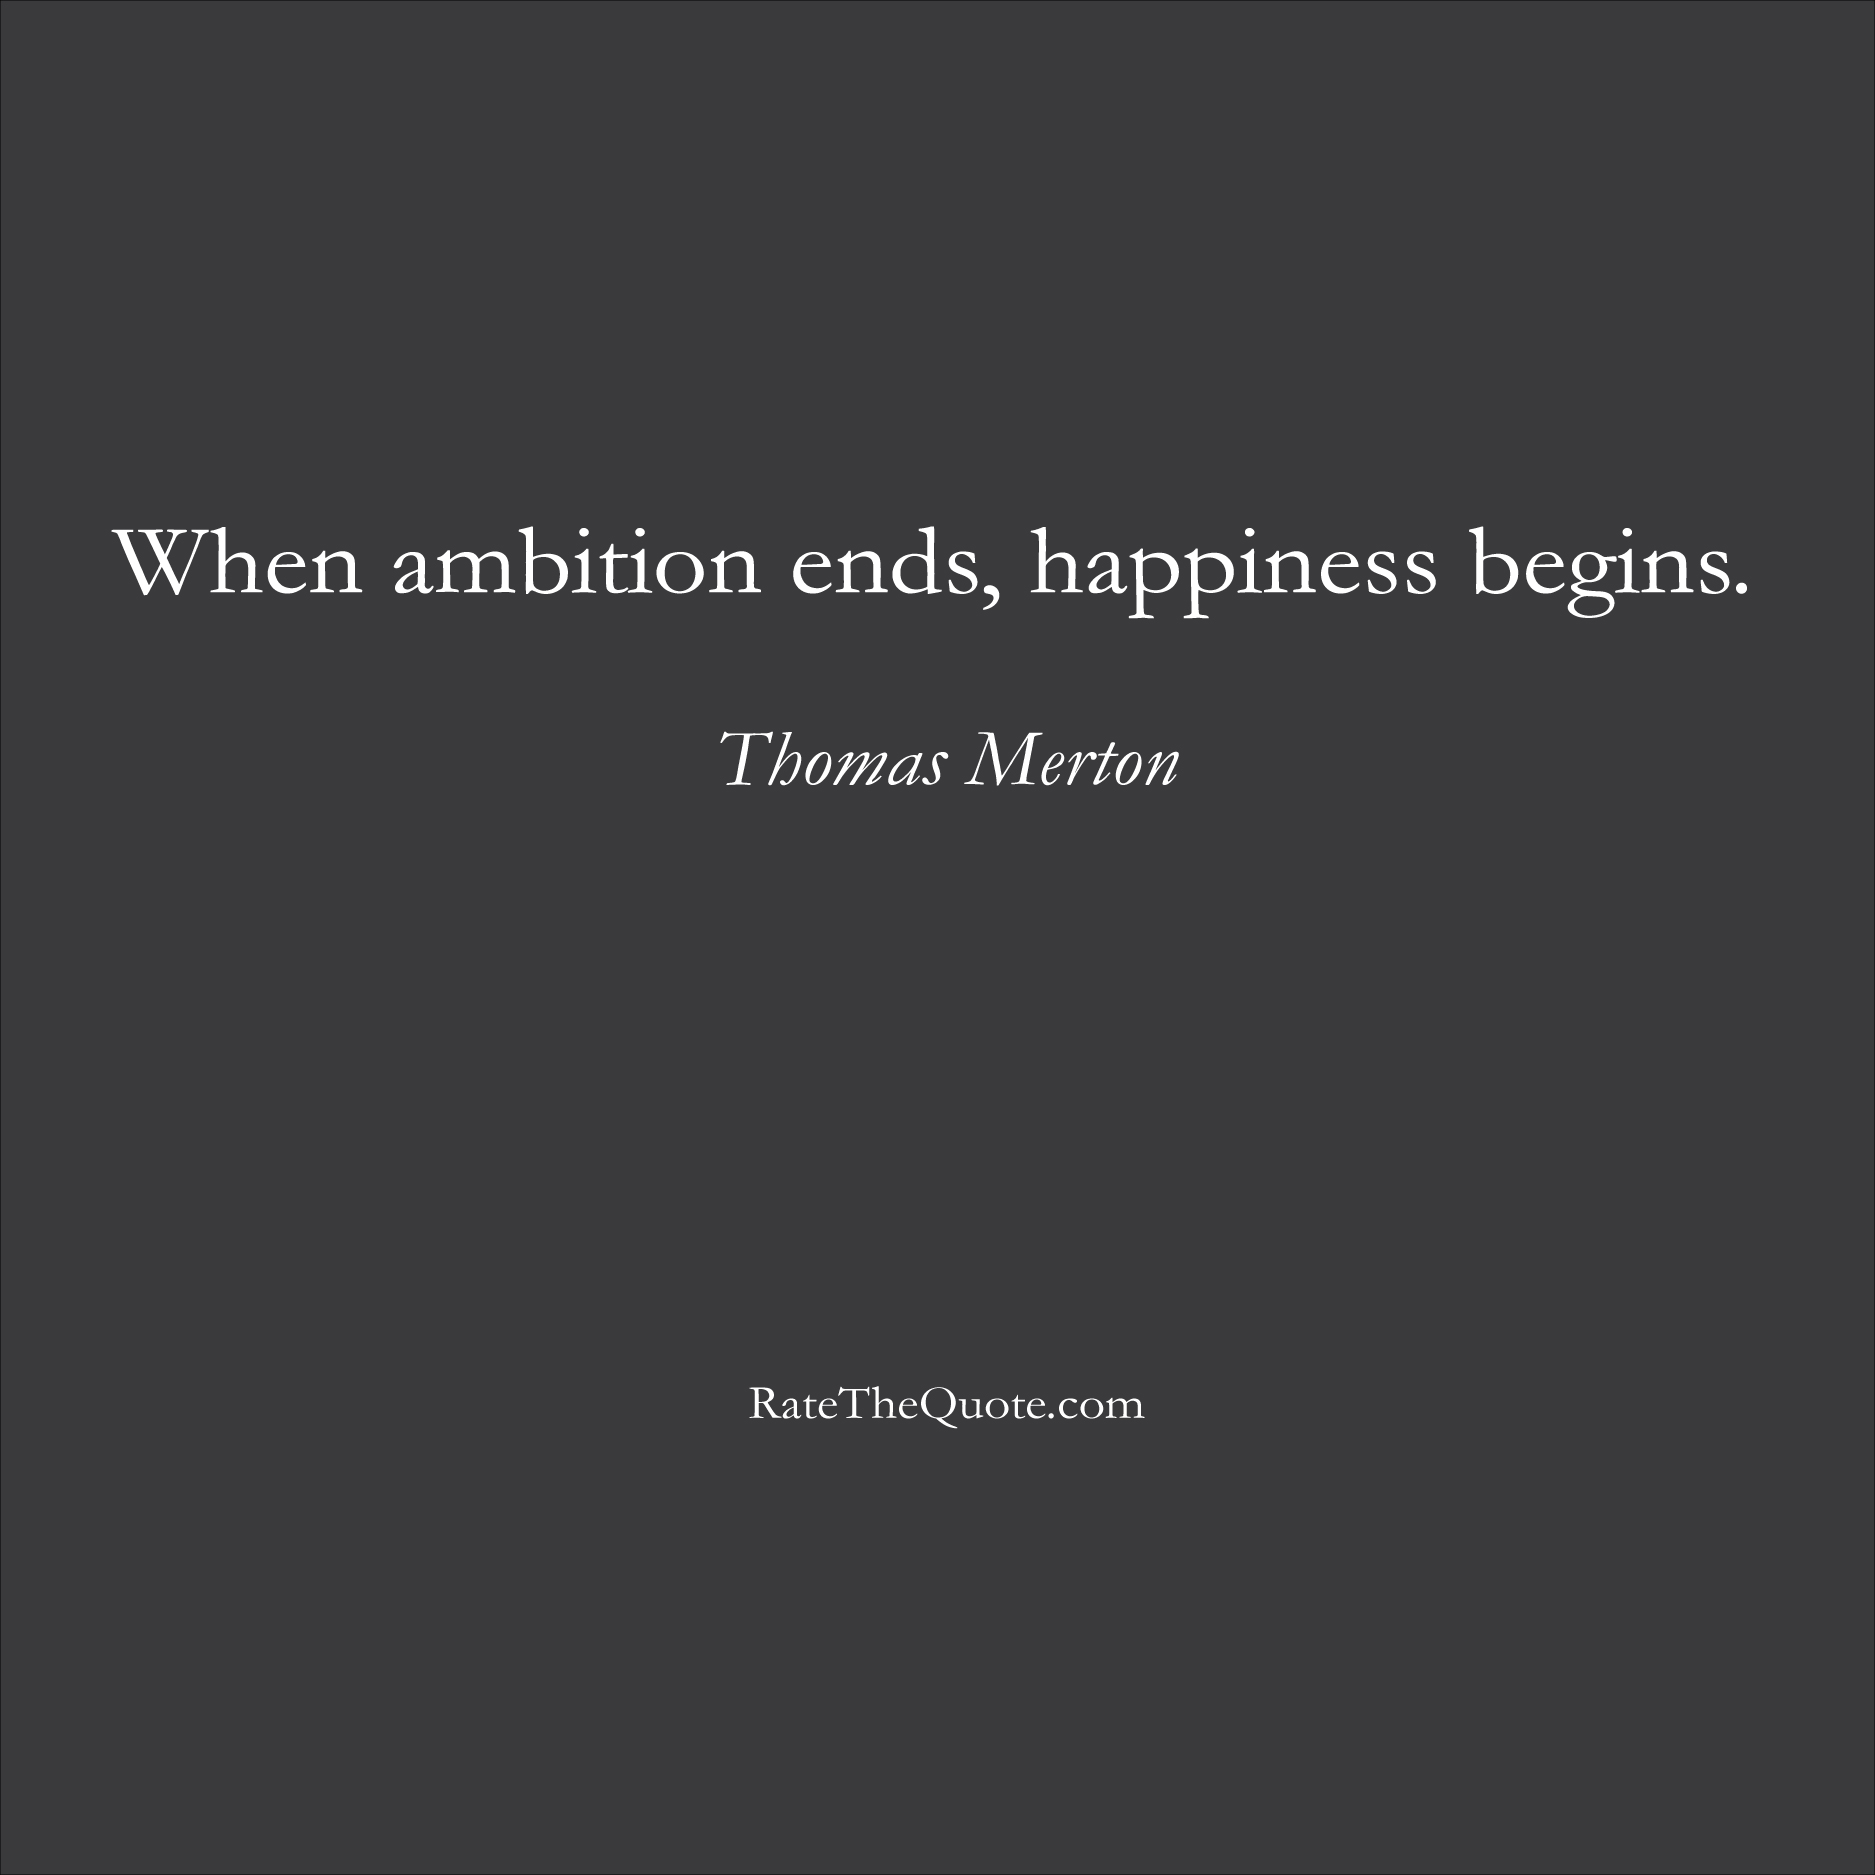 Happiness Quotes When ambition ends, happiness begins. Thomas Merton